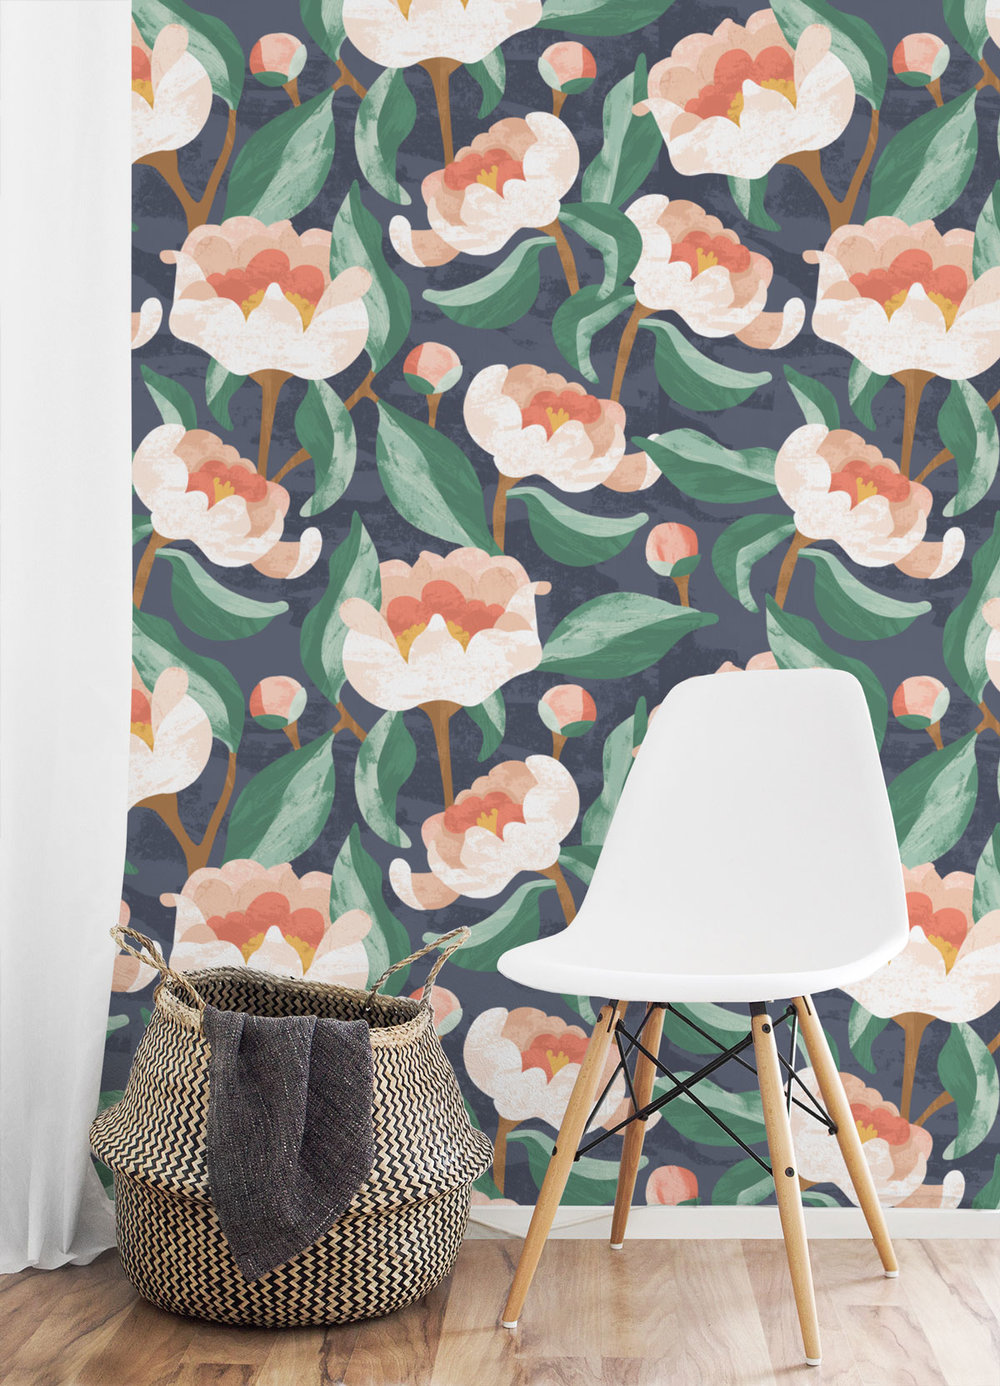 Coral Charm Peony Bold Floral Wallpaper - Our boldest floral wallpaper, with oversized blooms sure to make a statement! Each wallpaper is printed to order, making them an eco-friendly, long-lasting solution for any interior decor or DIY project you can imagine.